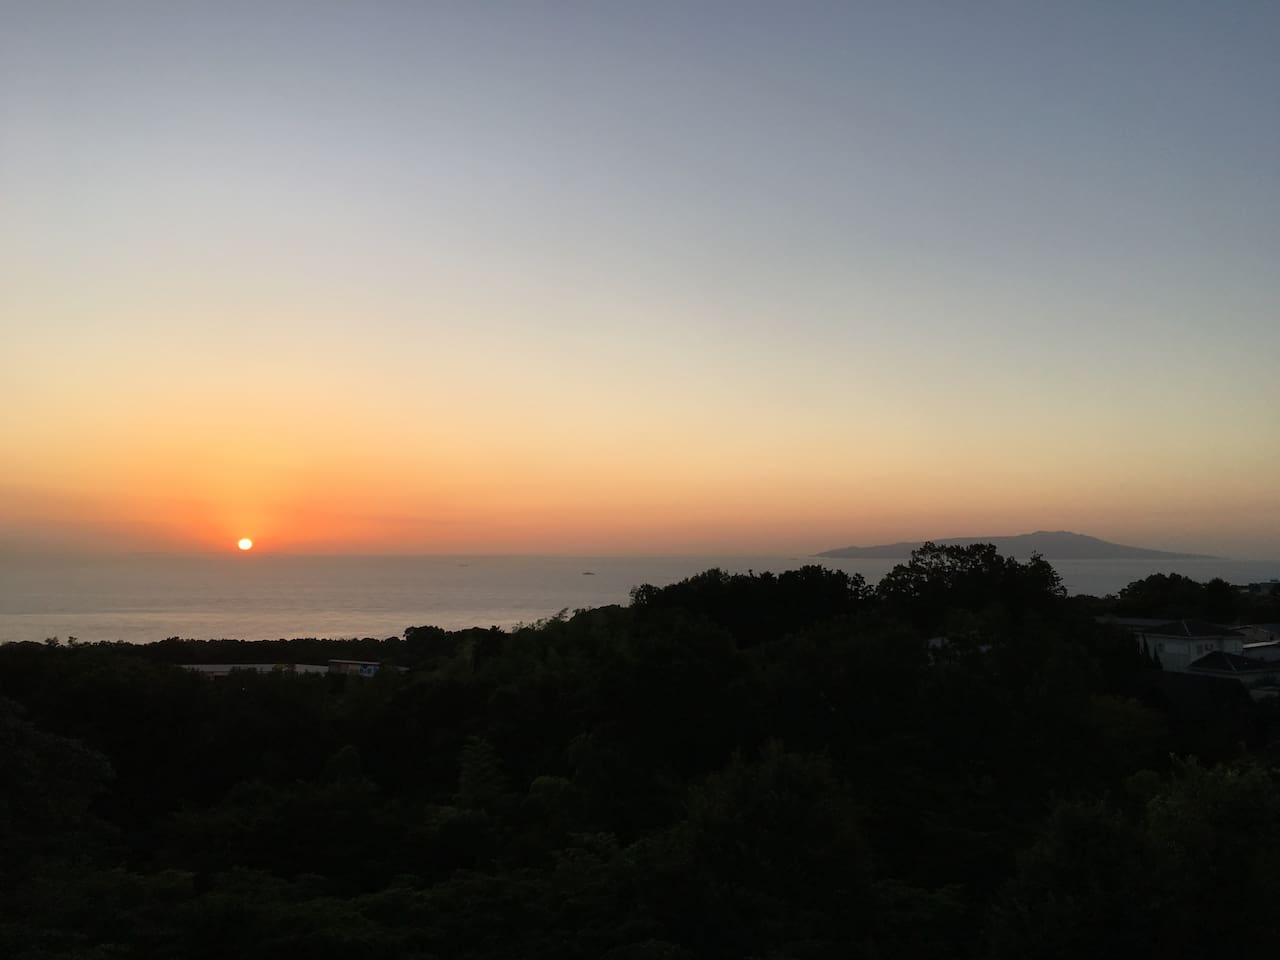 Magical sunrise view from Masaya Villa greets everyone good morning. This photo was taken during the sakura season, but seeing such beauty depends on the season, and weather conditions.